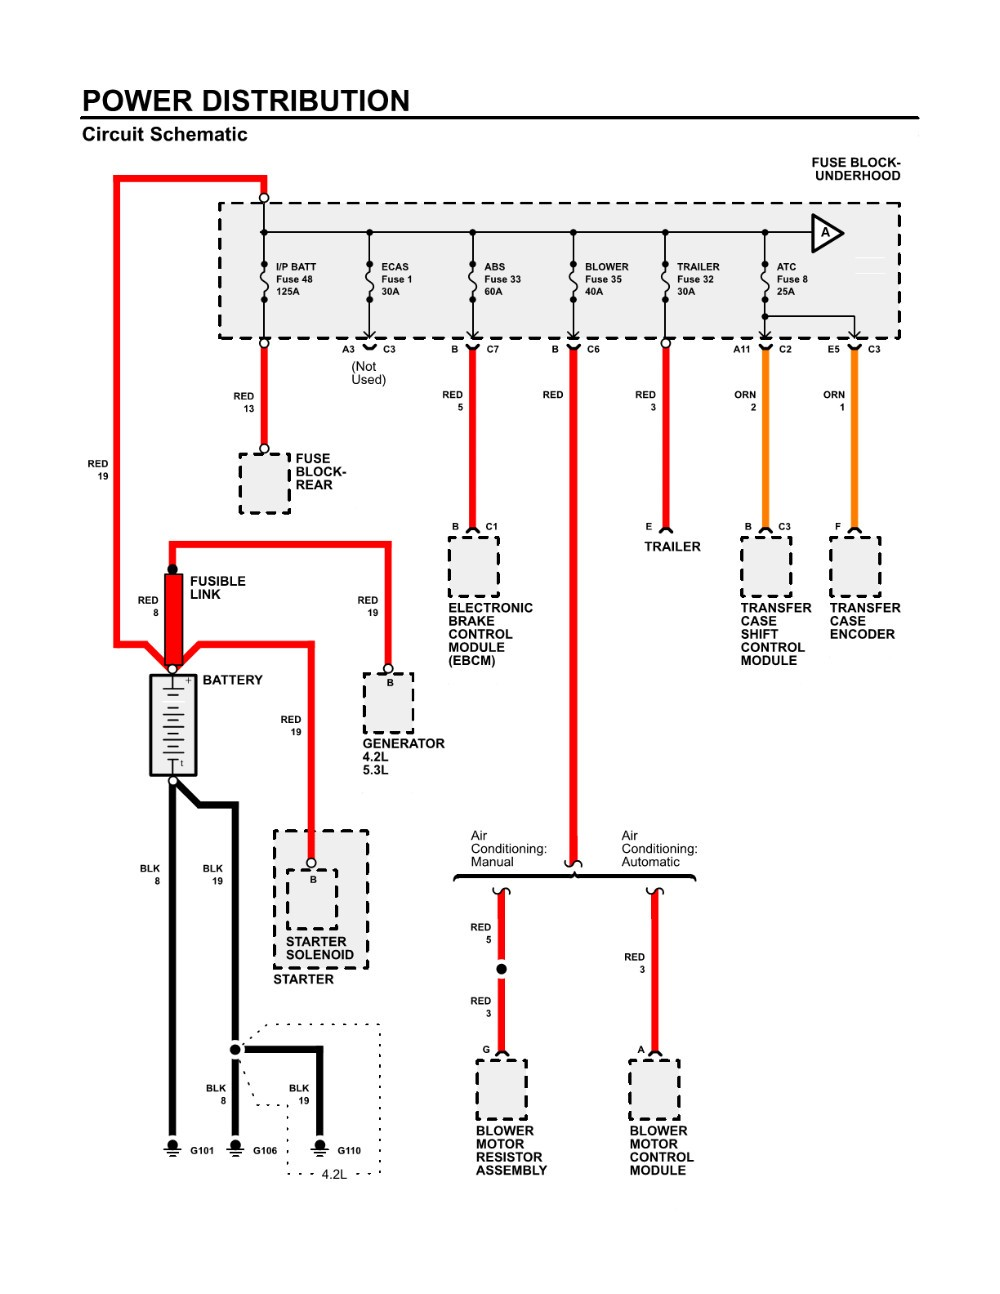 Ac Wiring Diagram Chevy Cruze Books Of 2011 Hhr Engine Stereo For Auto Electrical Rh Sakanoueno Me 2012